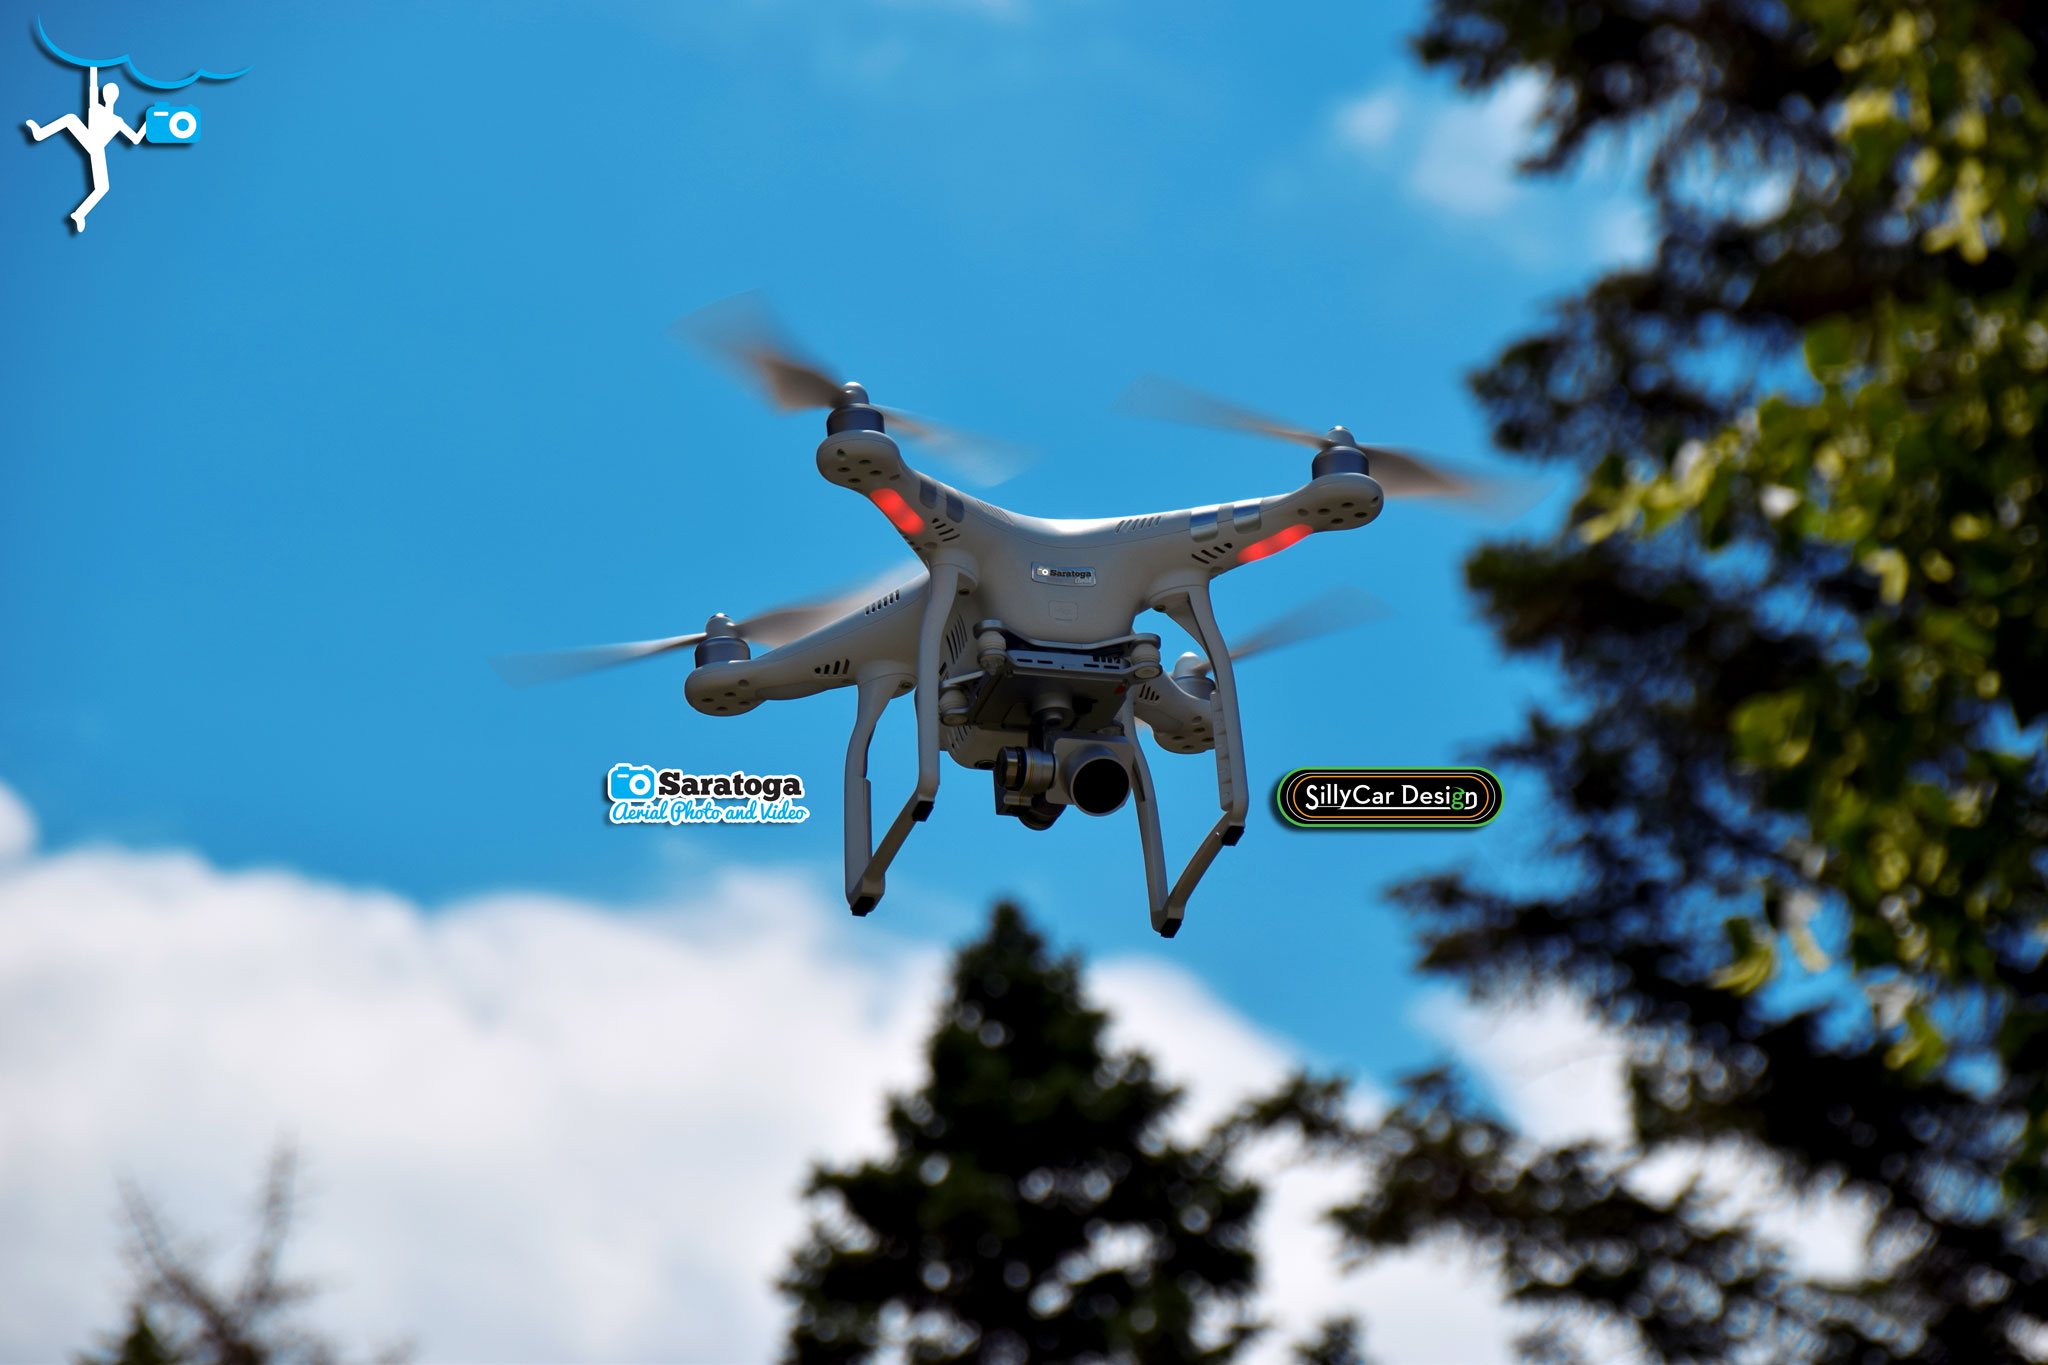 Photo of Small Unmanned Aircraft System (Drone) in flight.